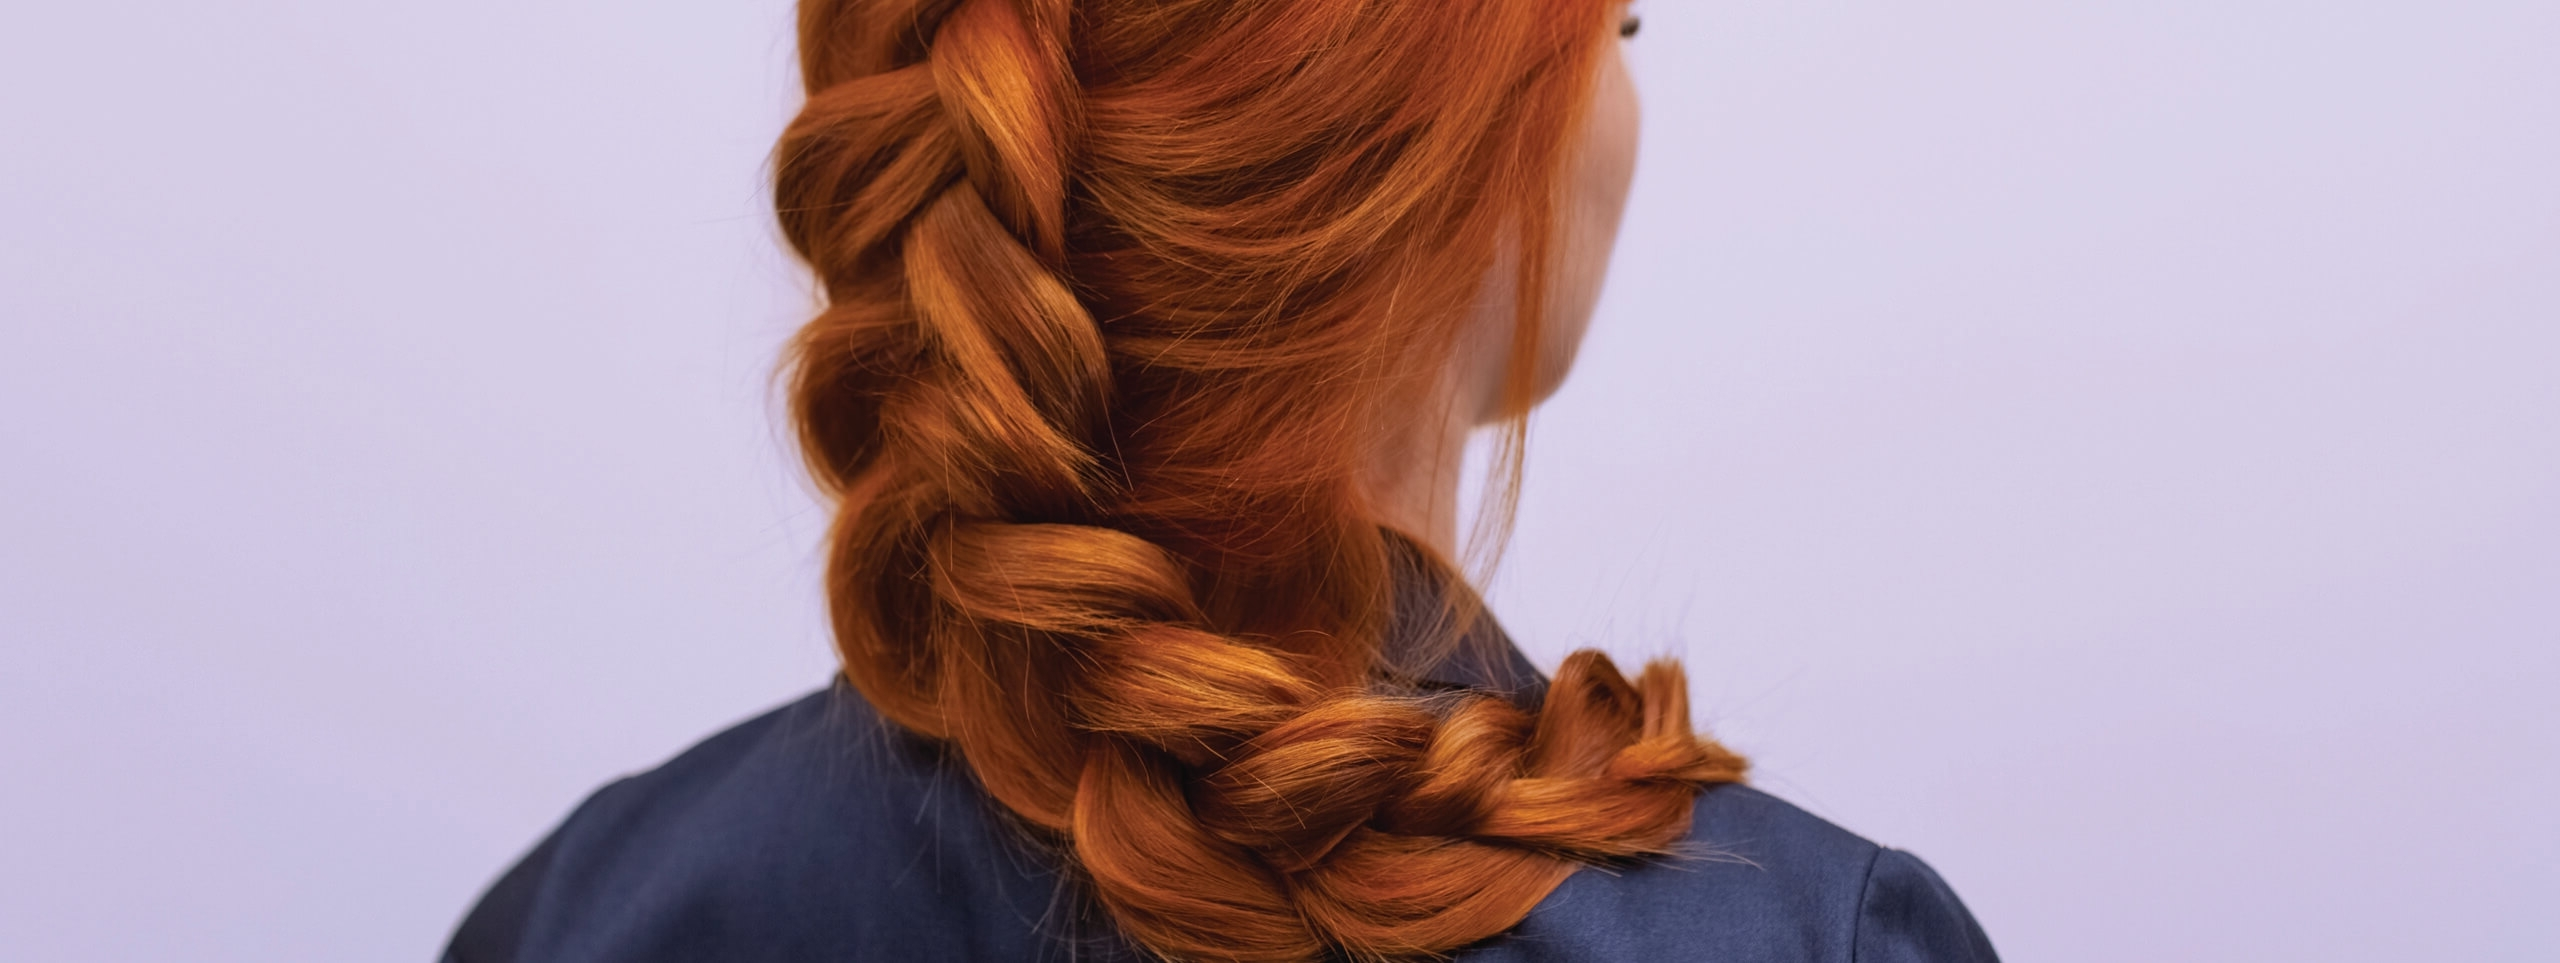 Trendy Two Classic Braids Hairstyles With Classic Braid Hairstyles That Are Easy To Try (View 9 of 15)